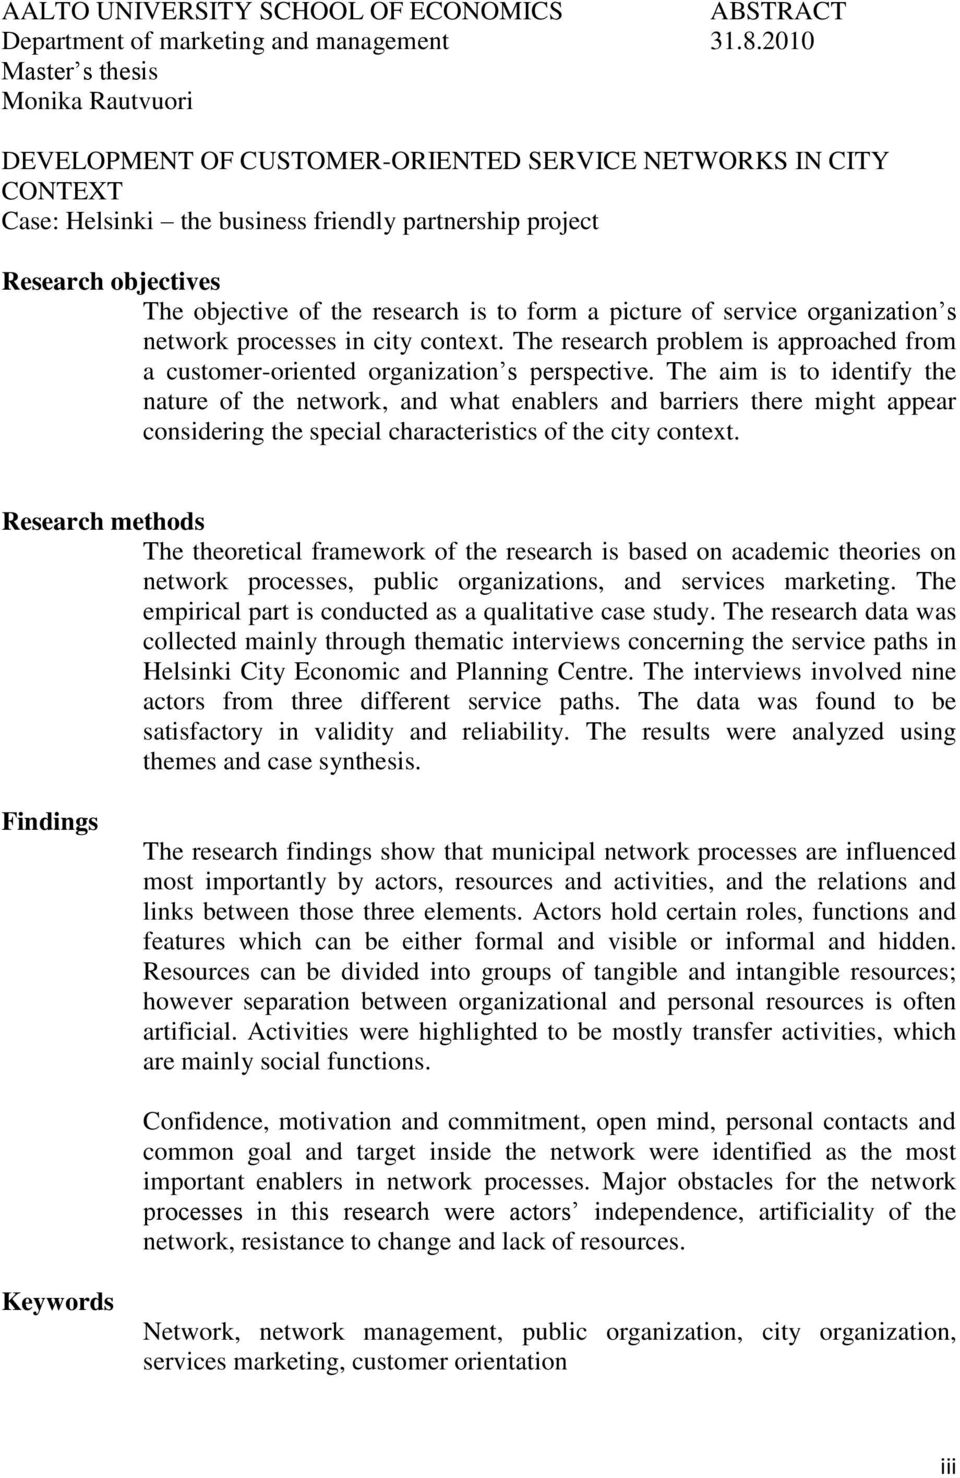 the research is to form a picture of service organization s network processes in city context. The research problem is approached from a customer-oriented organization s perspective.